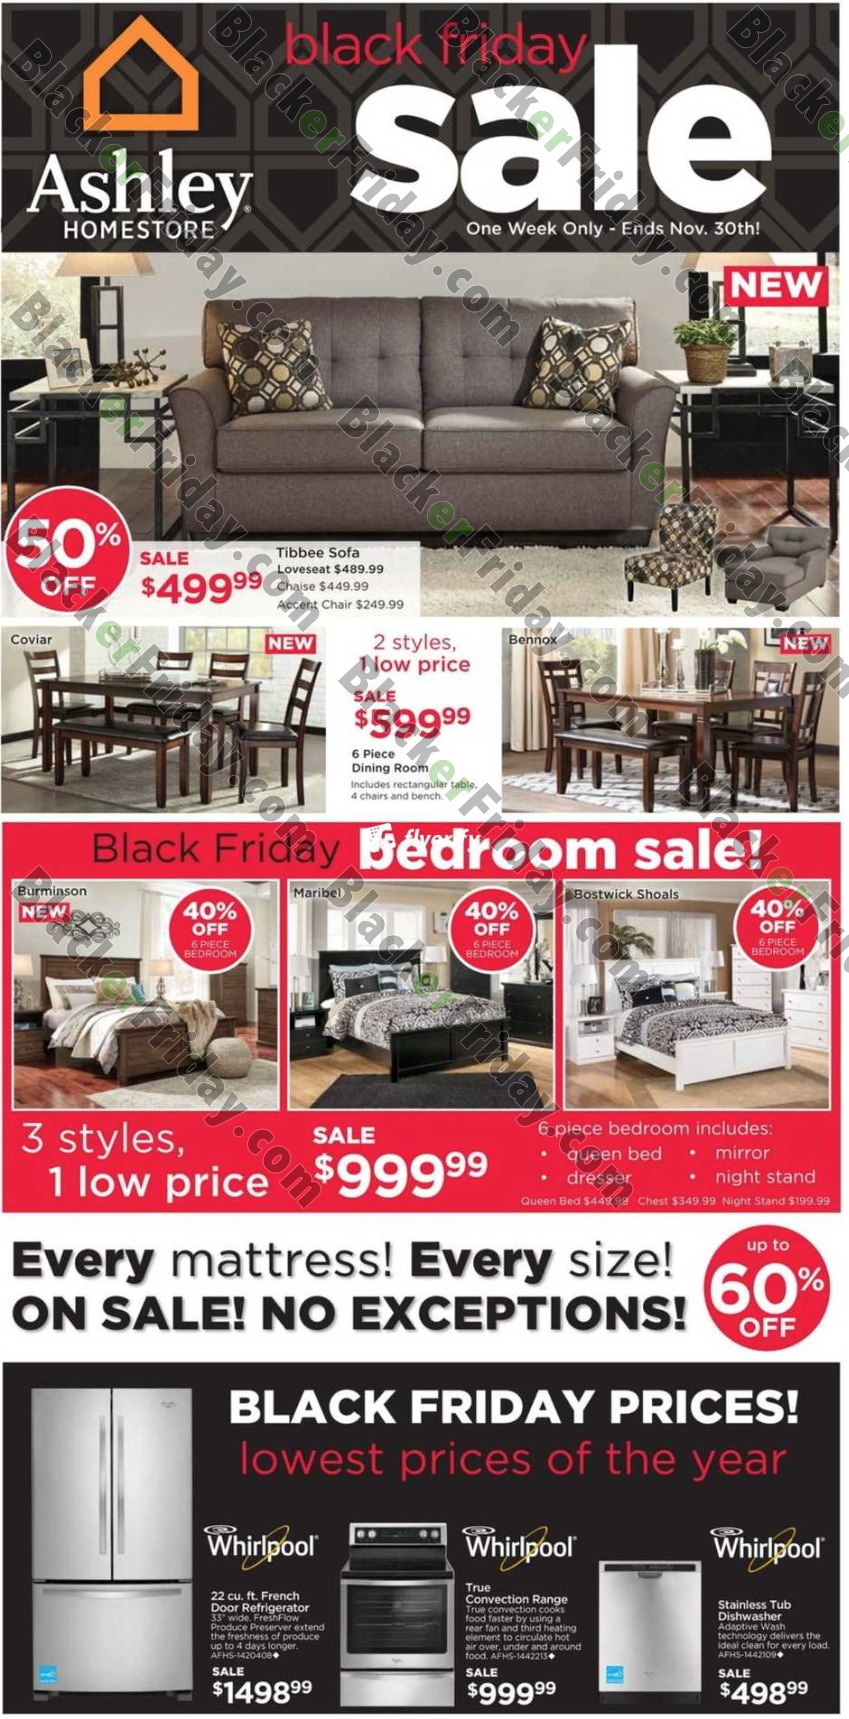 Ashley Furniture Homestore Black Friday 2019 Ad Amp Sale